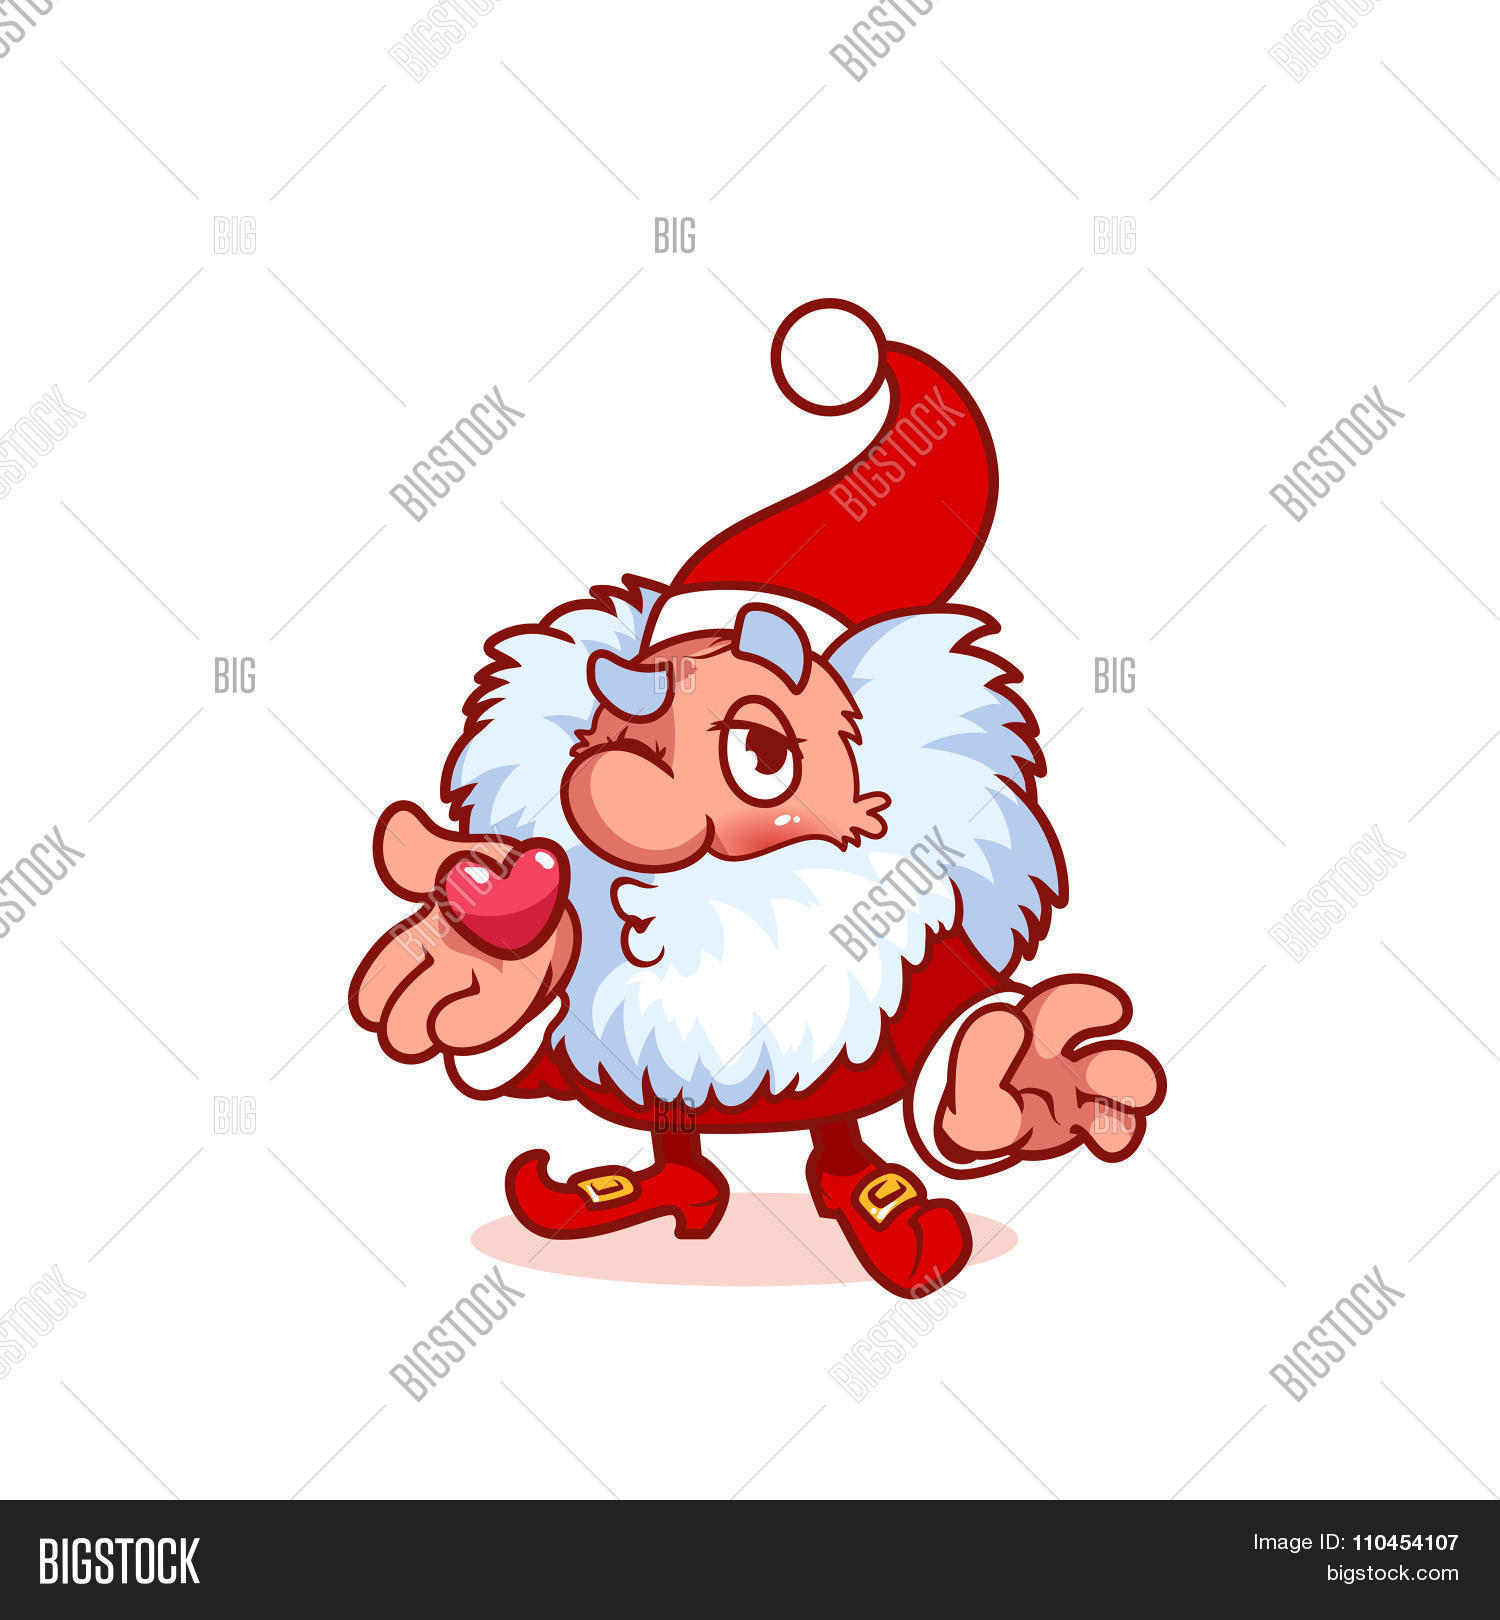 Christmas Gnomes Clipart.Christmas Gnome Blows Vector Photo Free Trial Bigstock